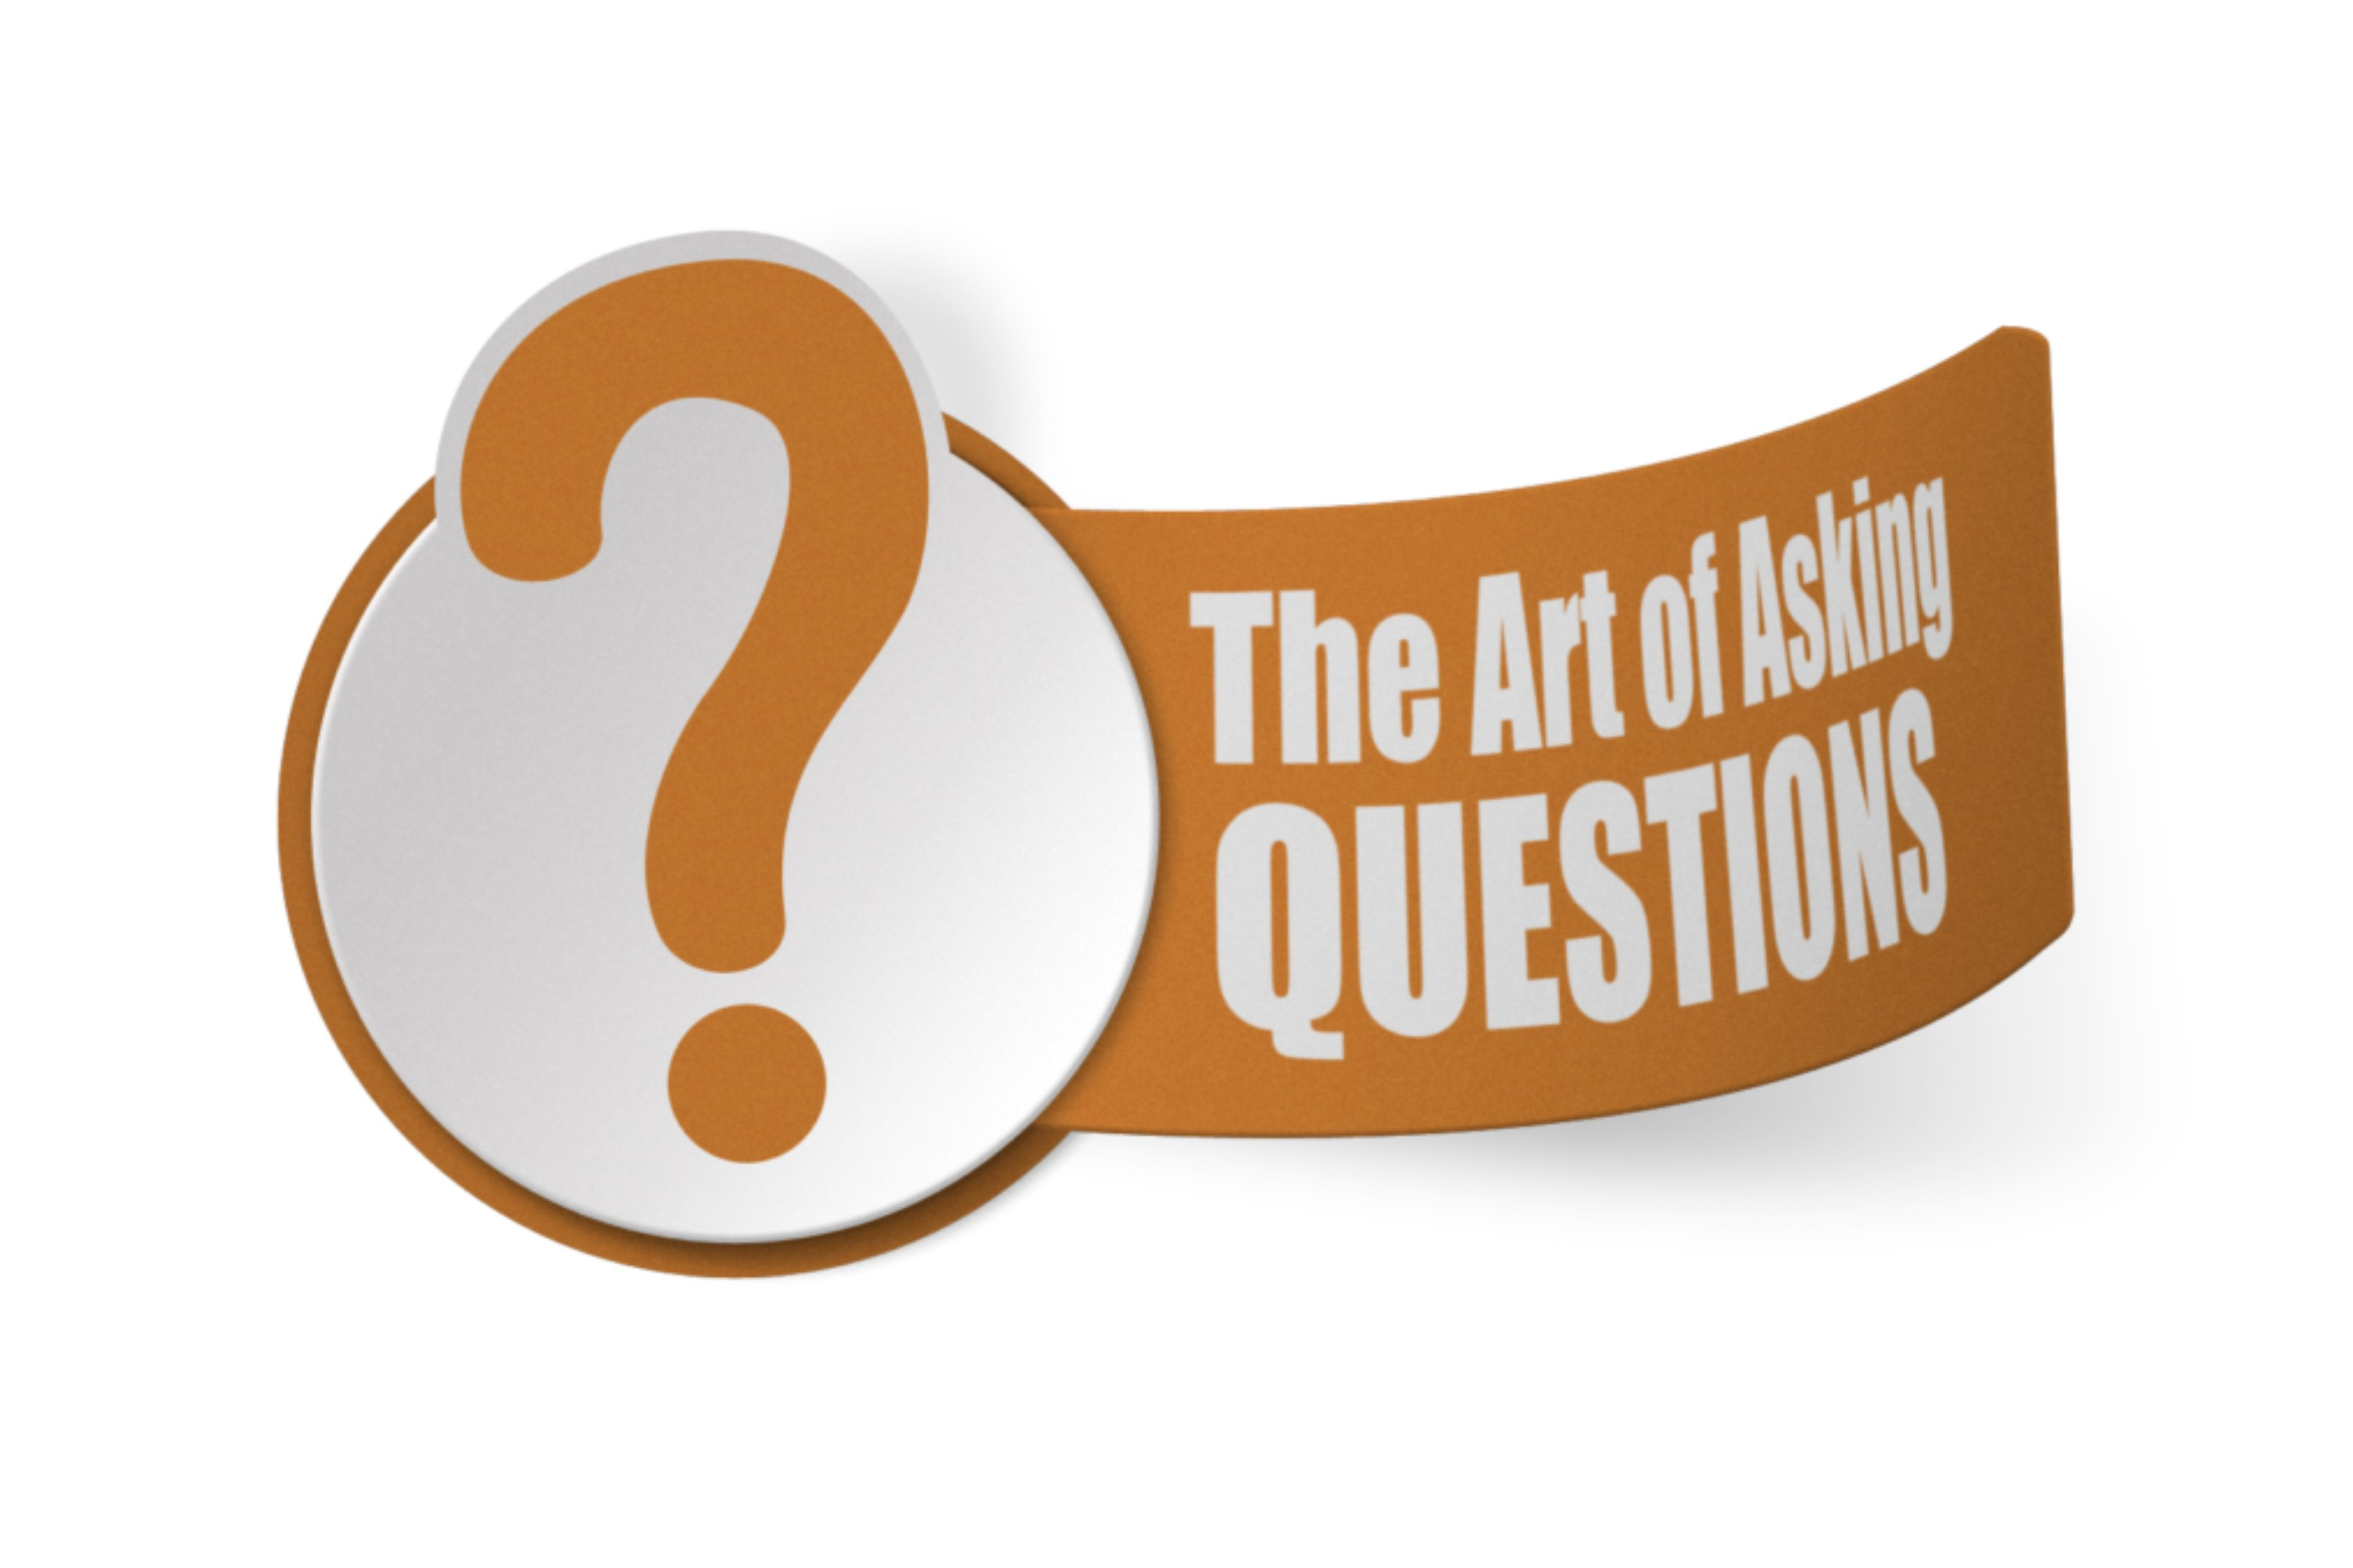 The Art of Asking Questions - Steve Coscia | Customer Service Expert